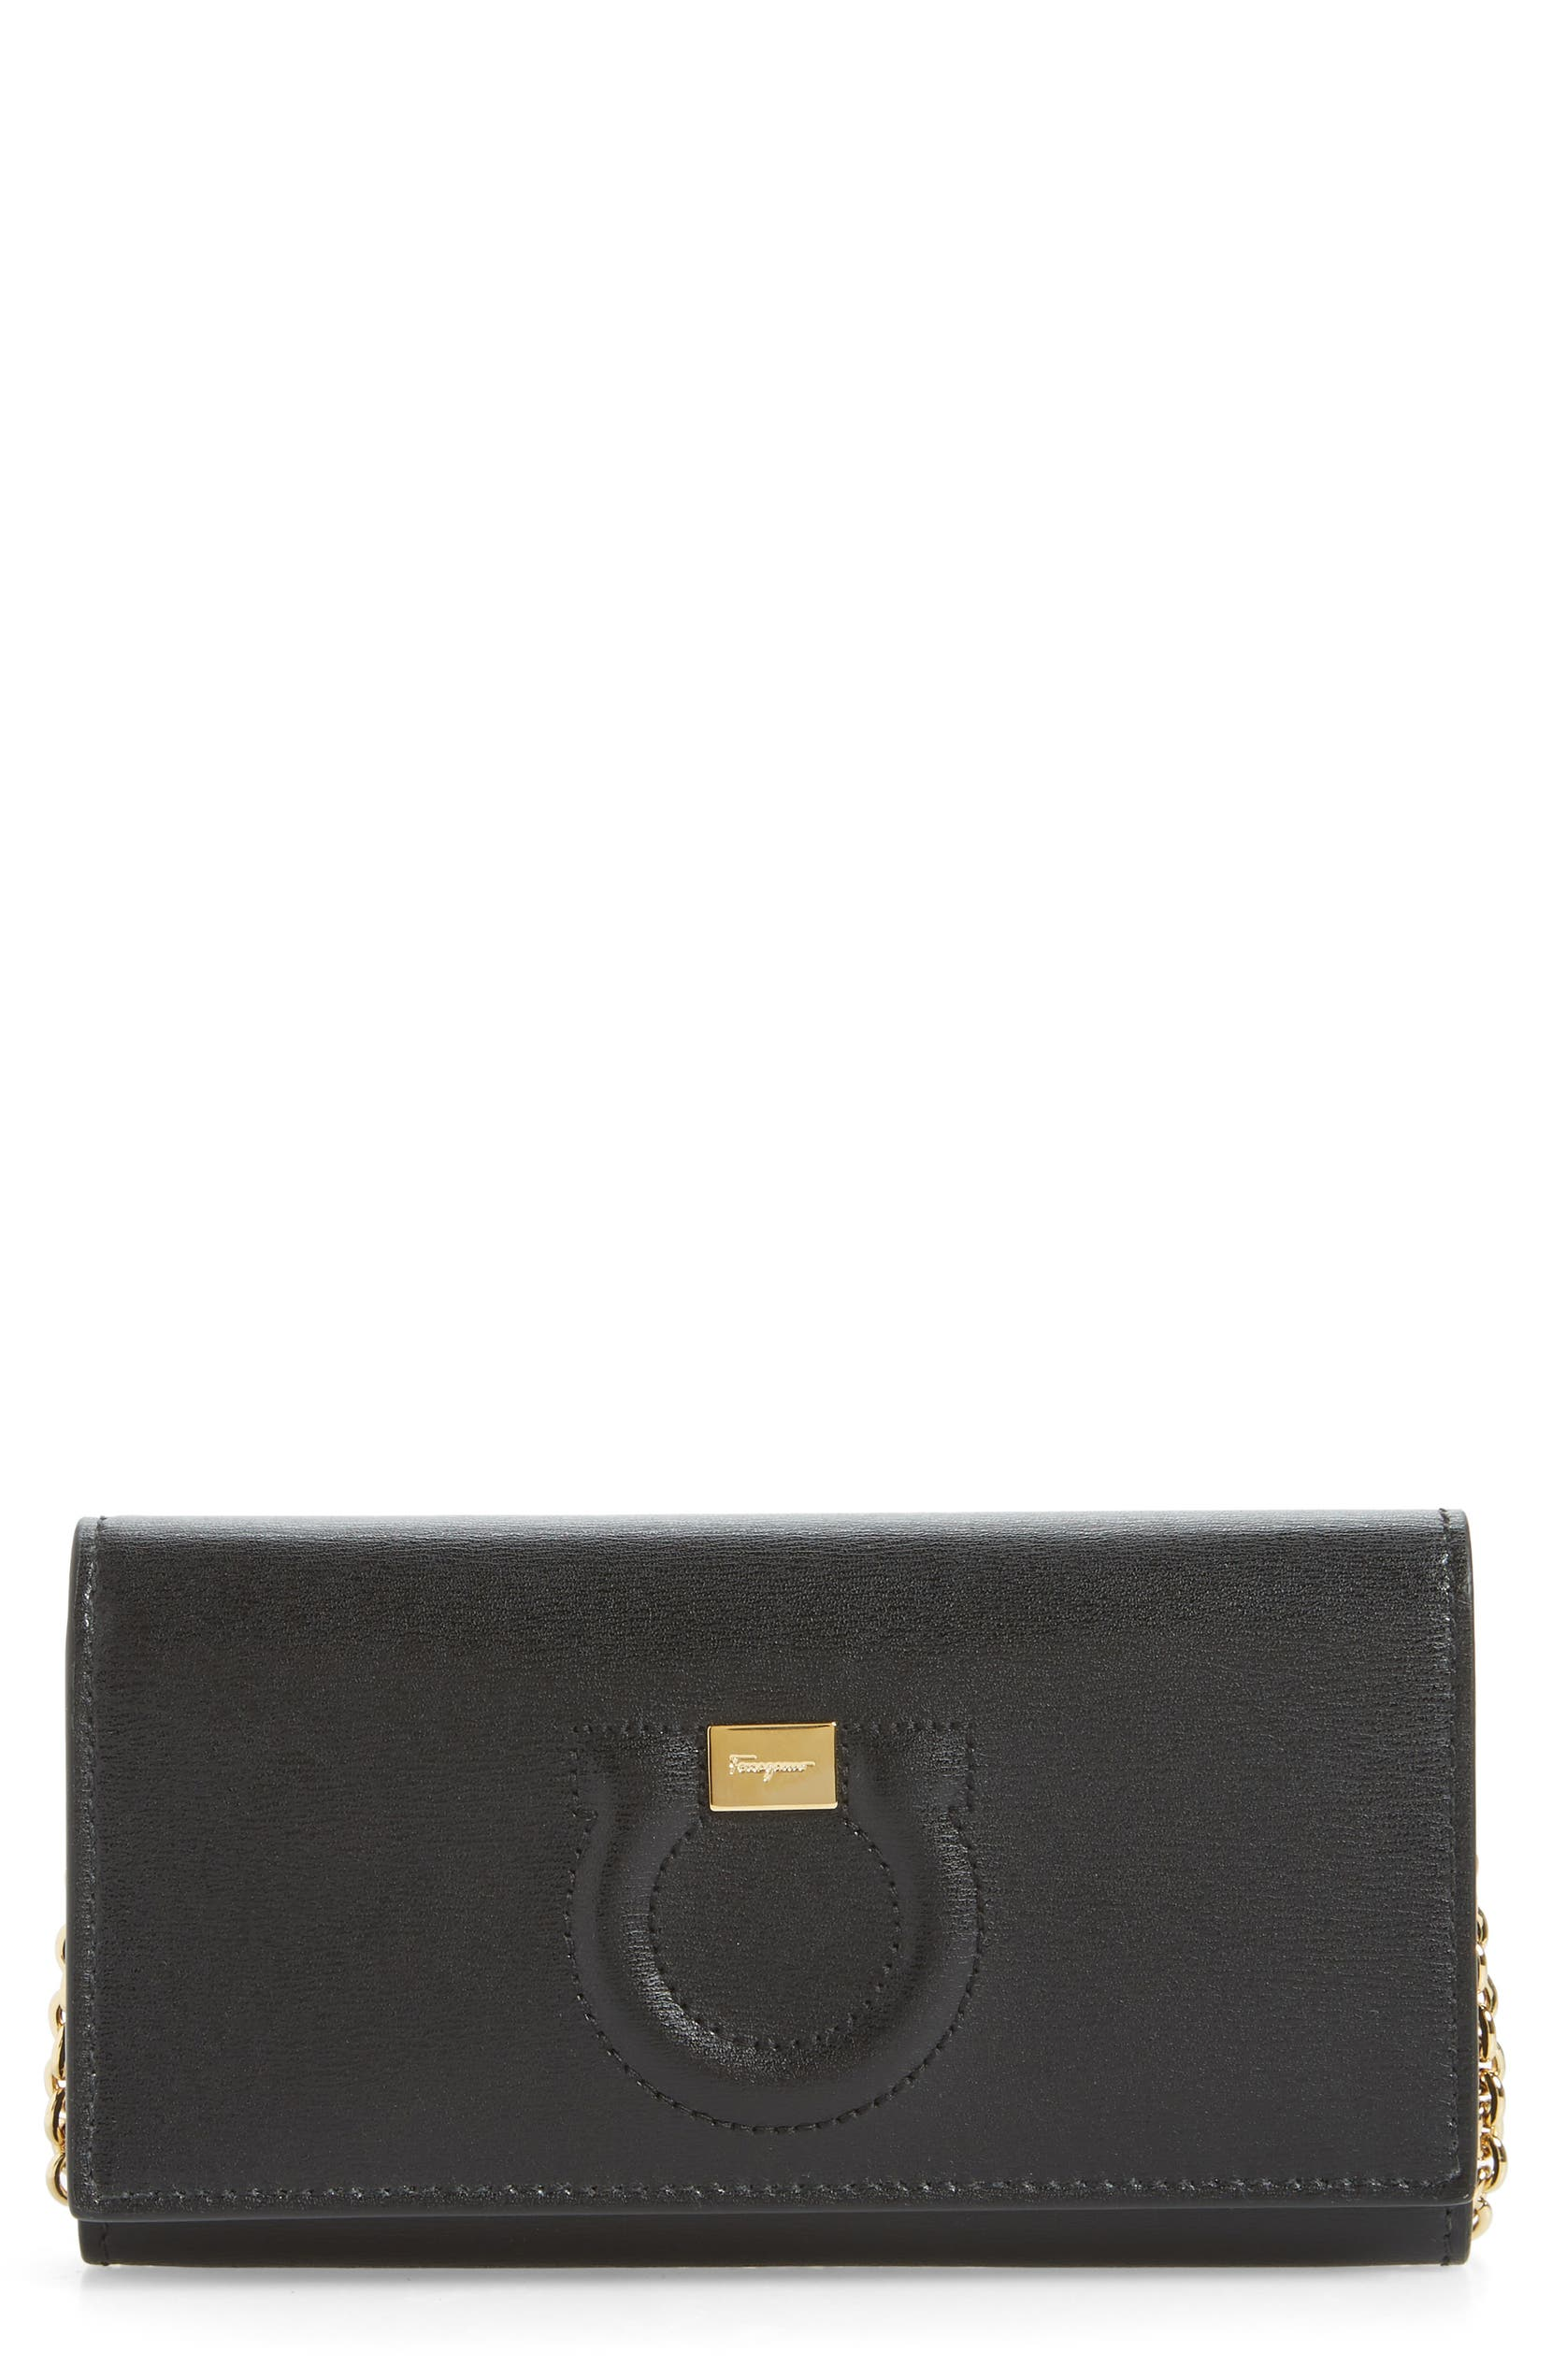 Salvatore Ferragamo City Quilted Gancio Leather Wallet on a Chain    Nordstrom 593ba36f90